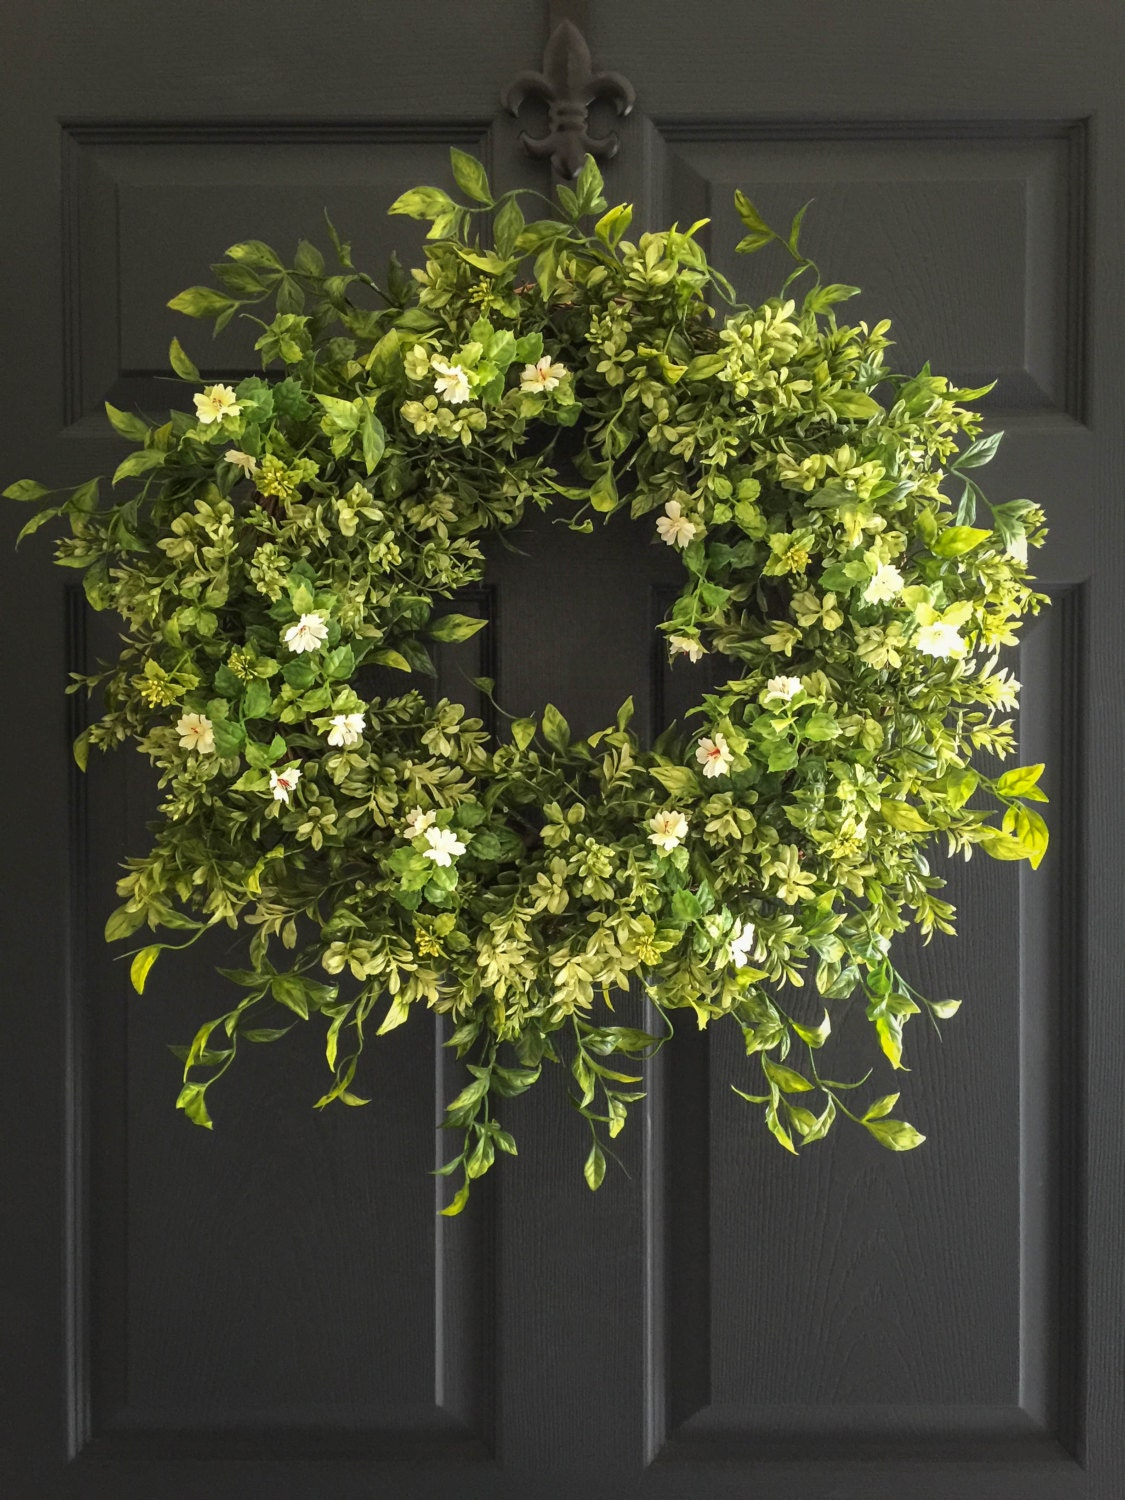 Boxwood Wreath With White Tea Leaf Flowers Display Wreath